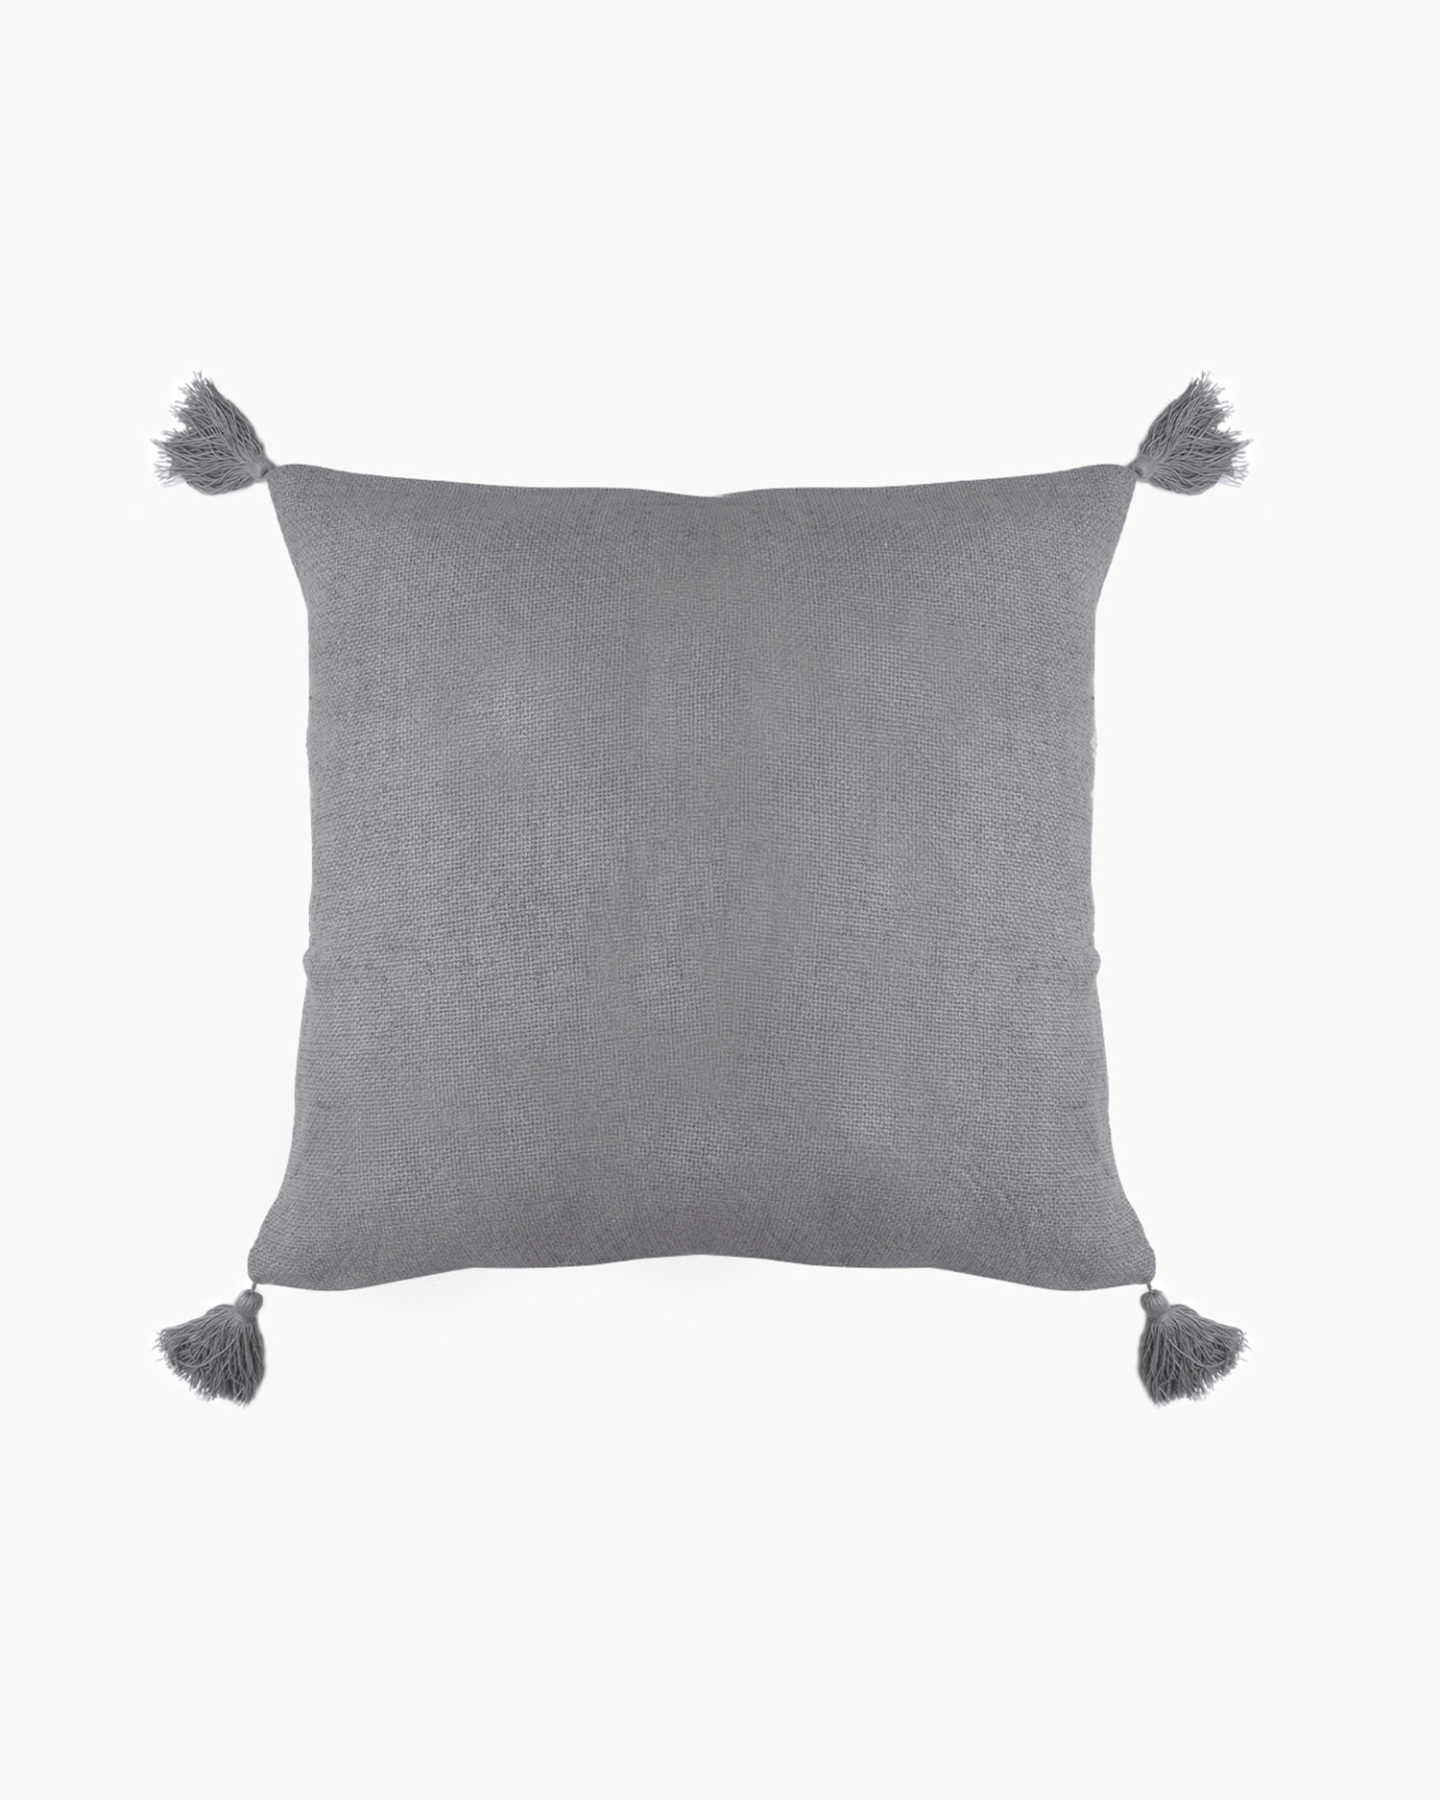 Linen Tassel Pillow Cover - Grey - 0